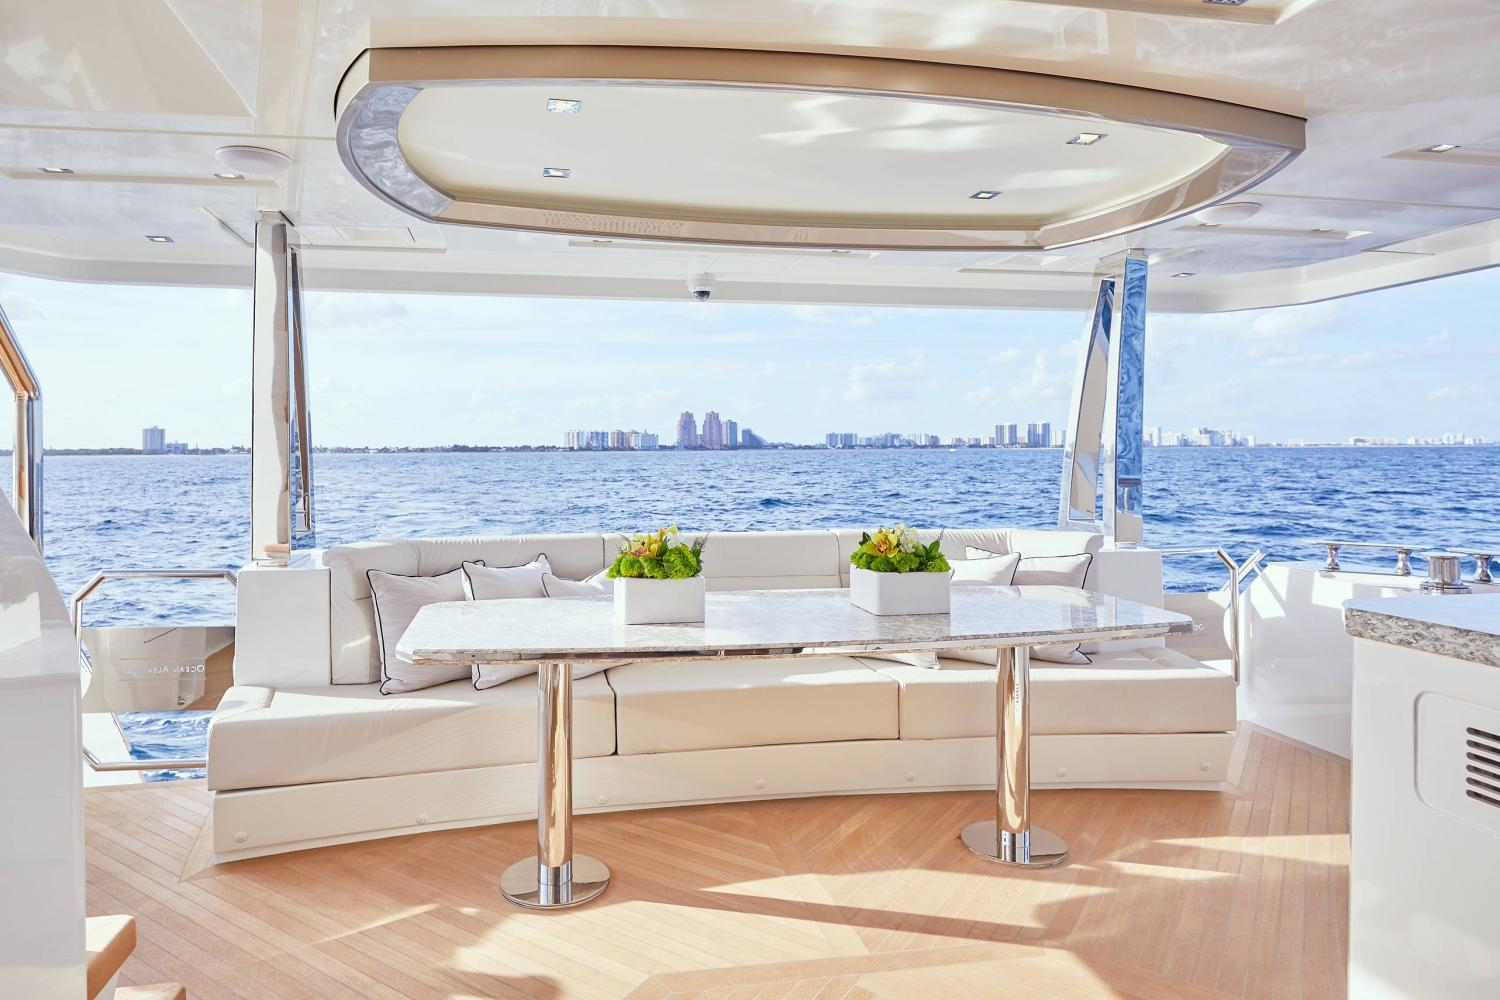 Image 2 for Adaptable Ocean Alexander 26R Meets Every Boating Need